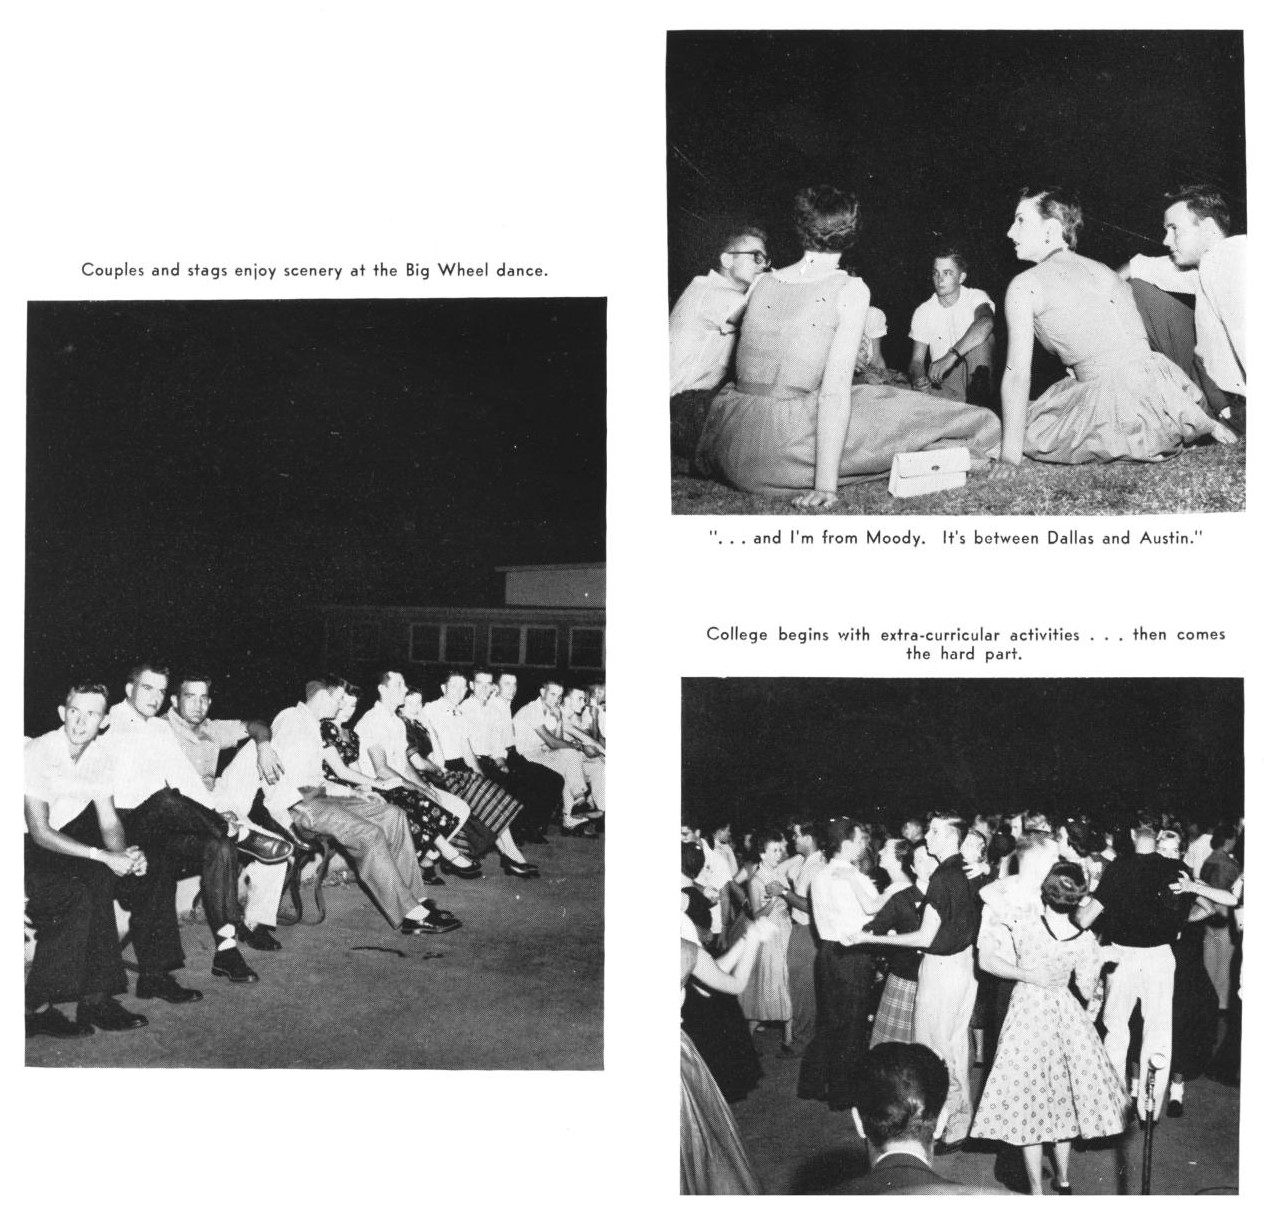 Three black and white photographs on a white background. All images show young people gathered, wearing nice dresses and 1950s clothing. Left photo is people sitting on benches in a row, top right photo is people sitting on the grass in a circle, bottom right photo is many couples dancing.